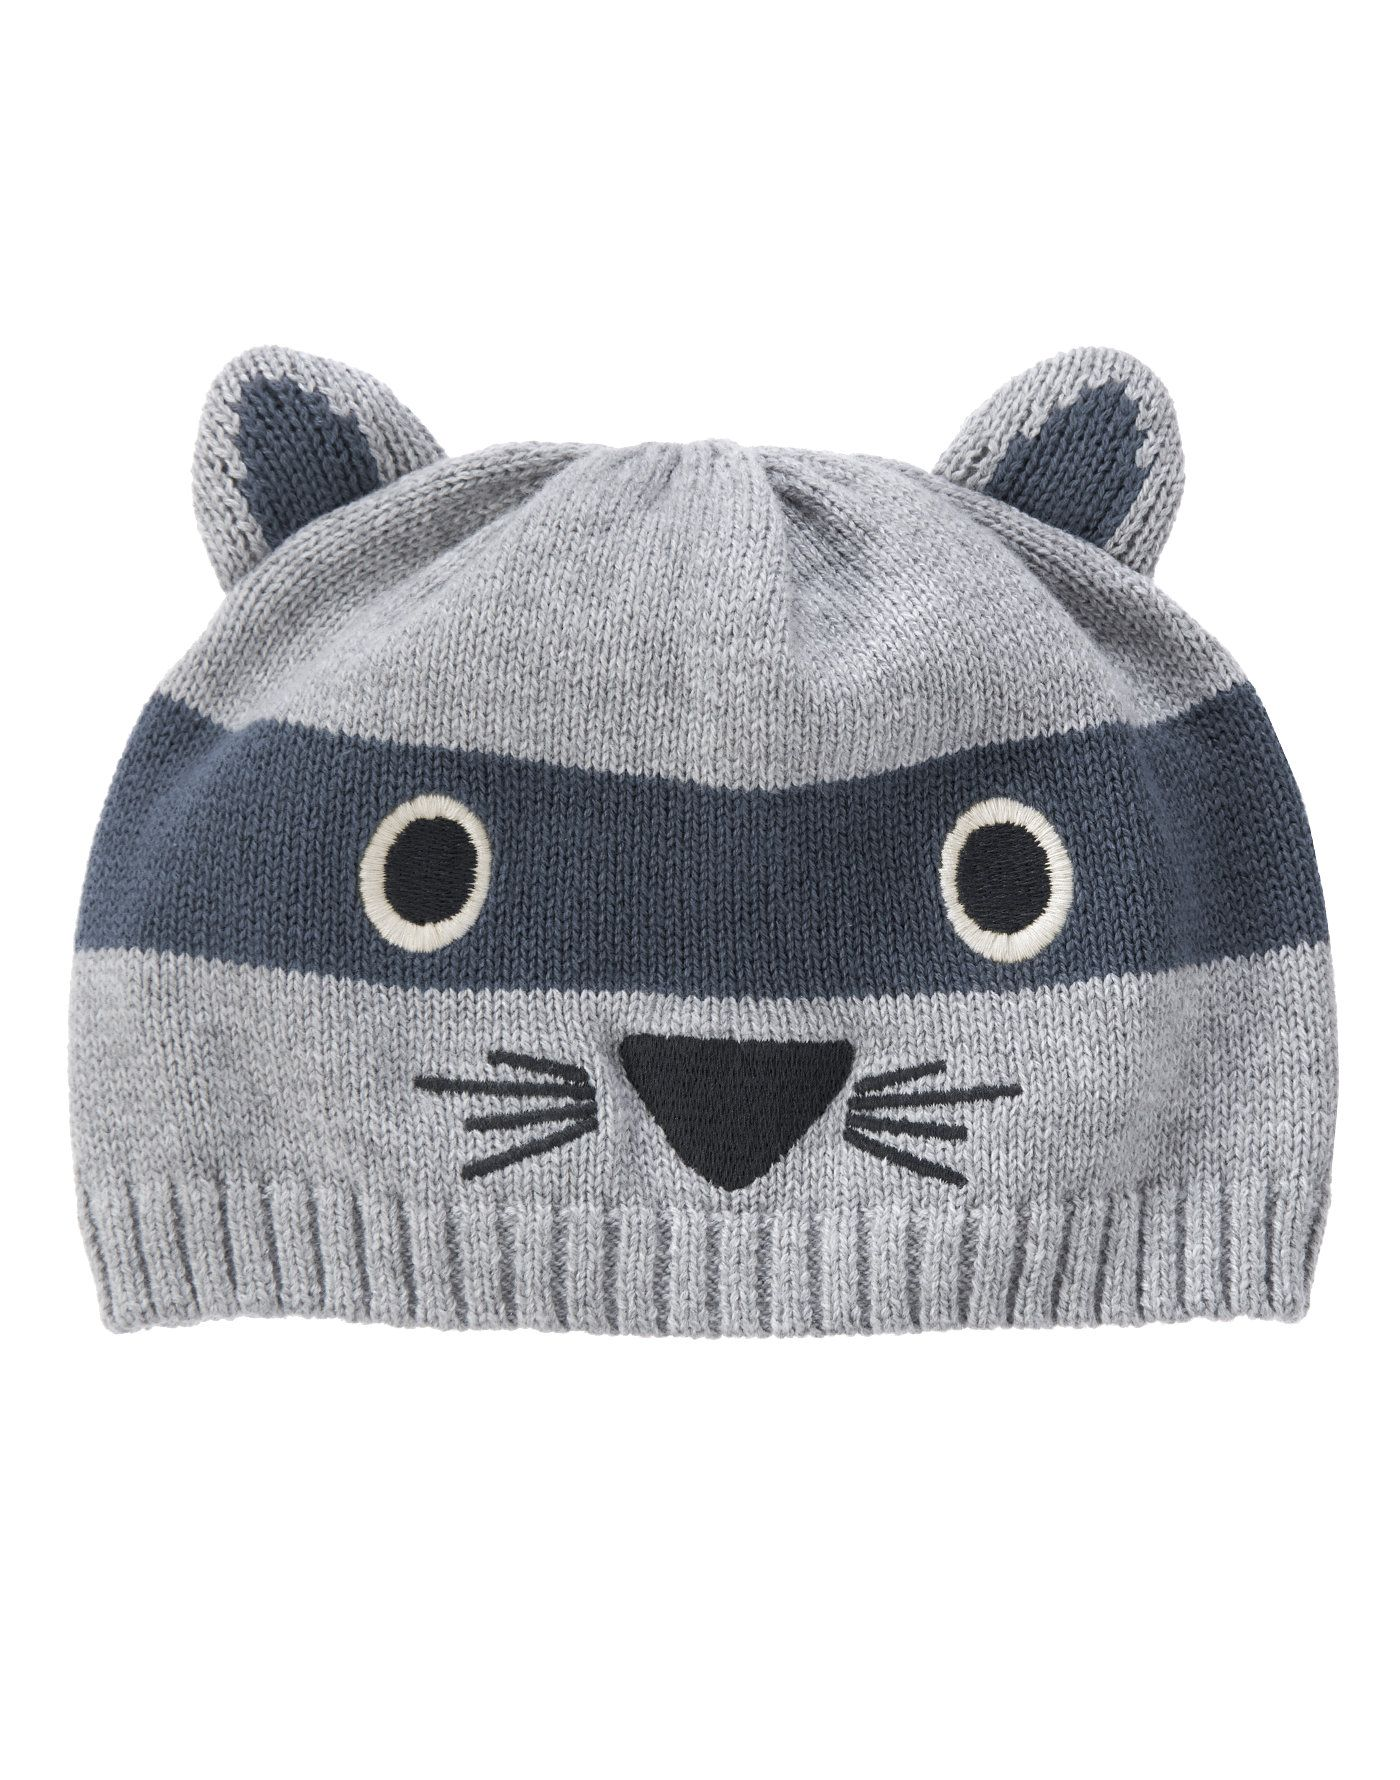 Raccoon Sweater Hat at Gymboree